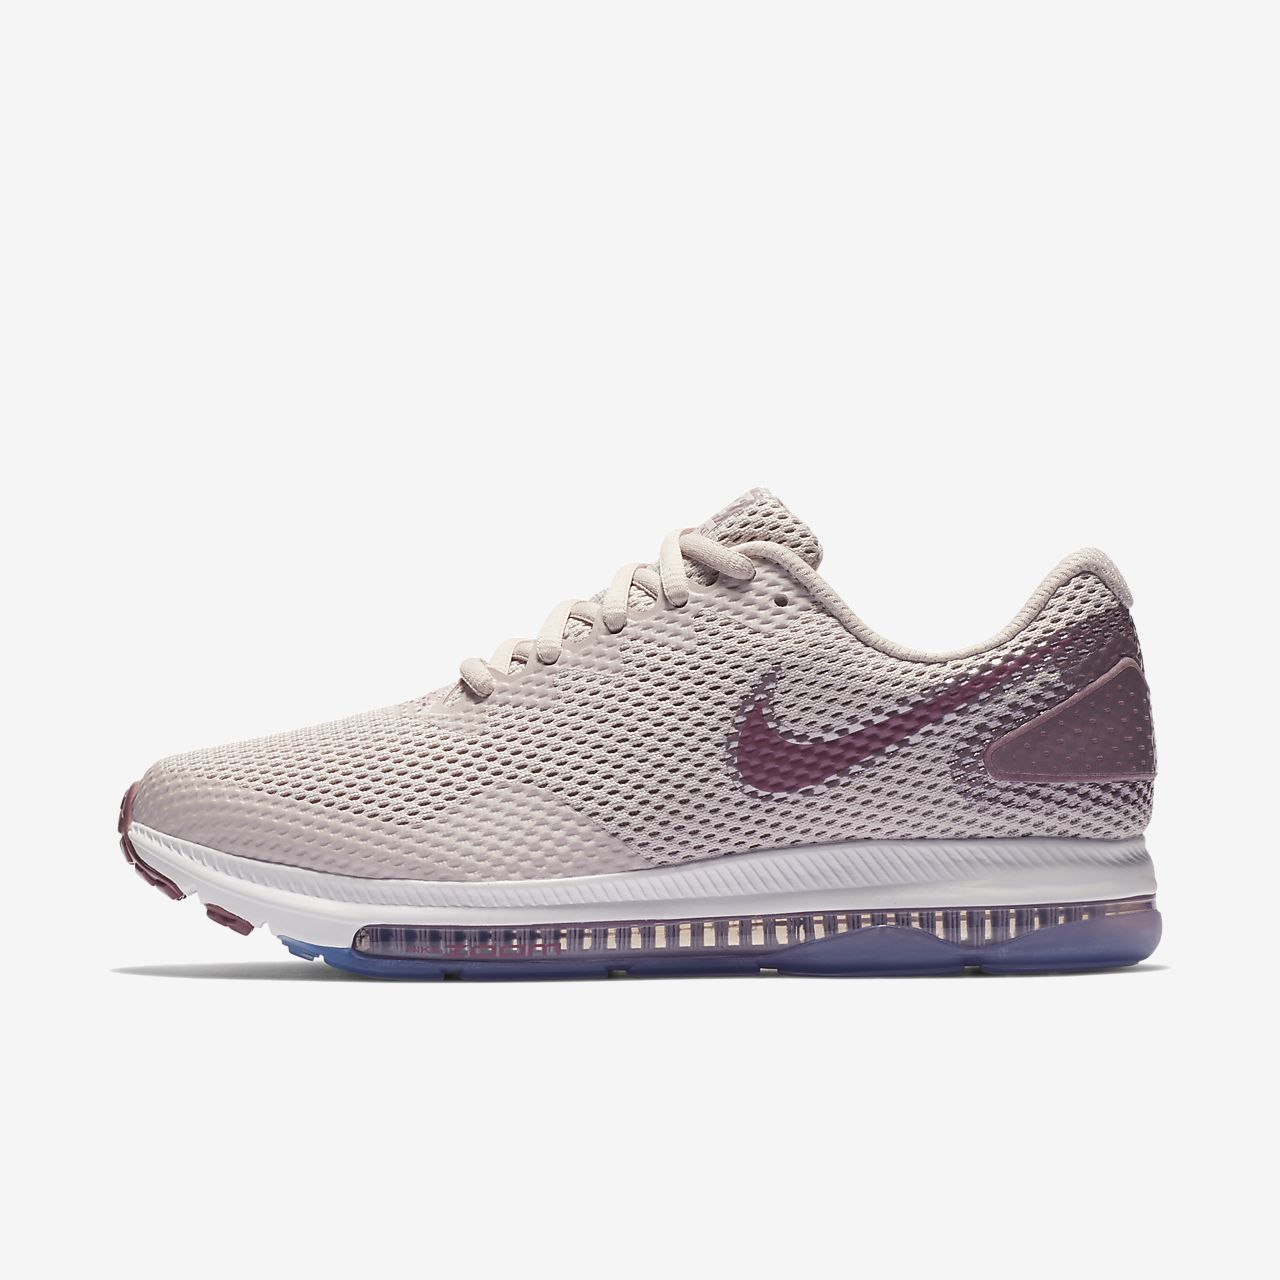 promo code for nike air max tailwind 7 kvinders guld